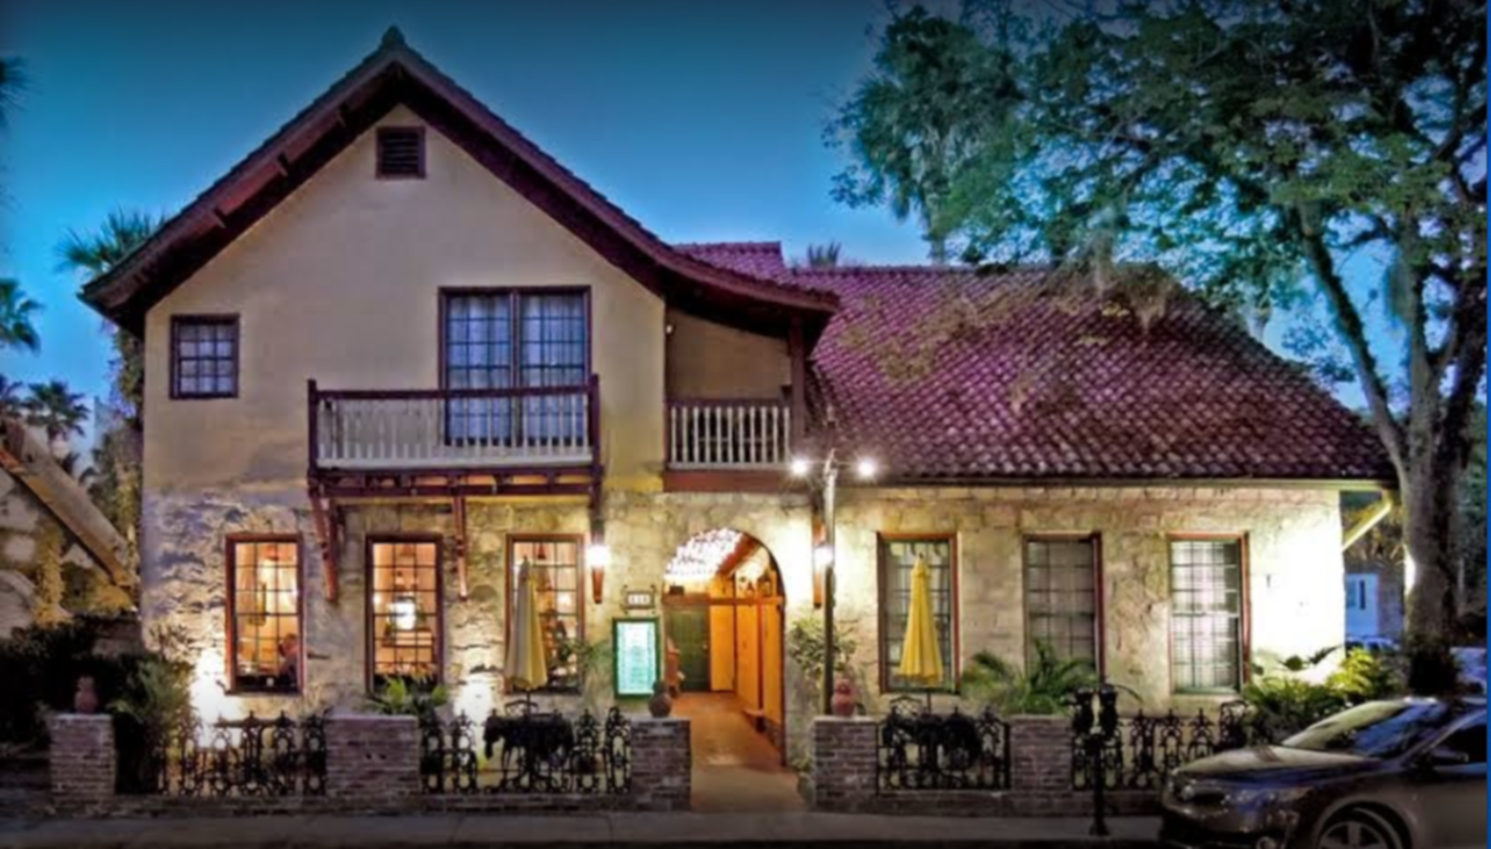 A view of a house at Old City House Inn & Restaurant.